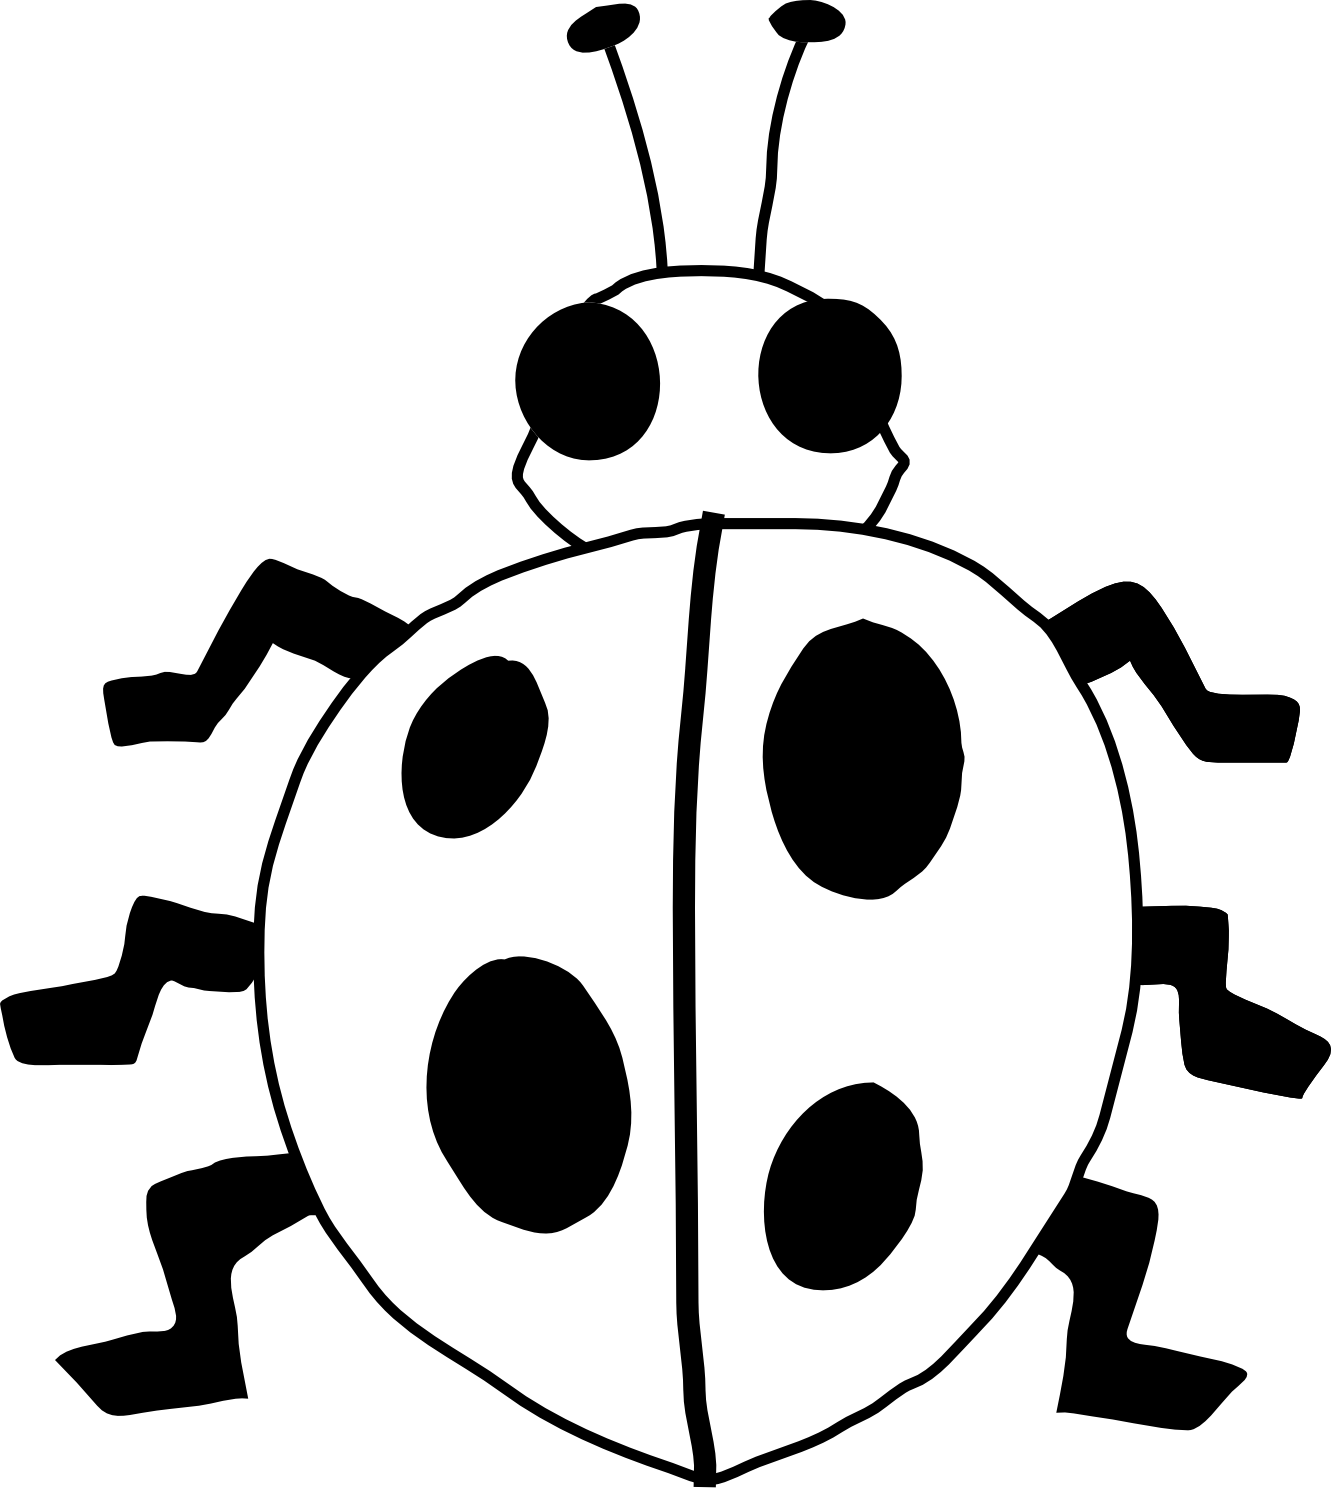 Free Cute Ladybug Clipart Black And White, Download Free.